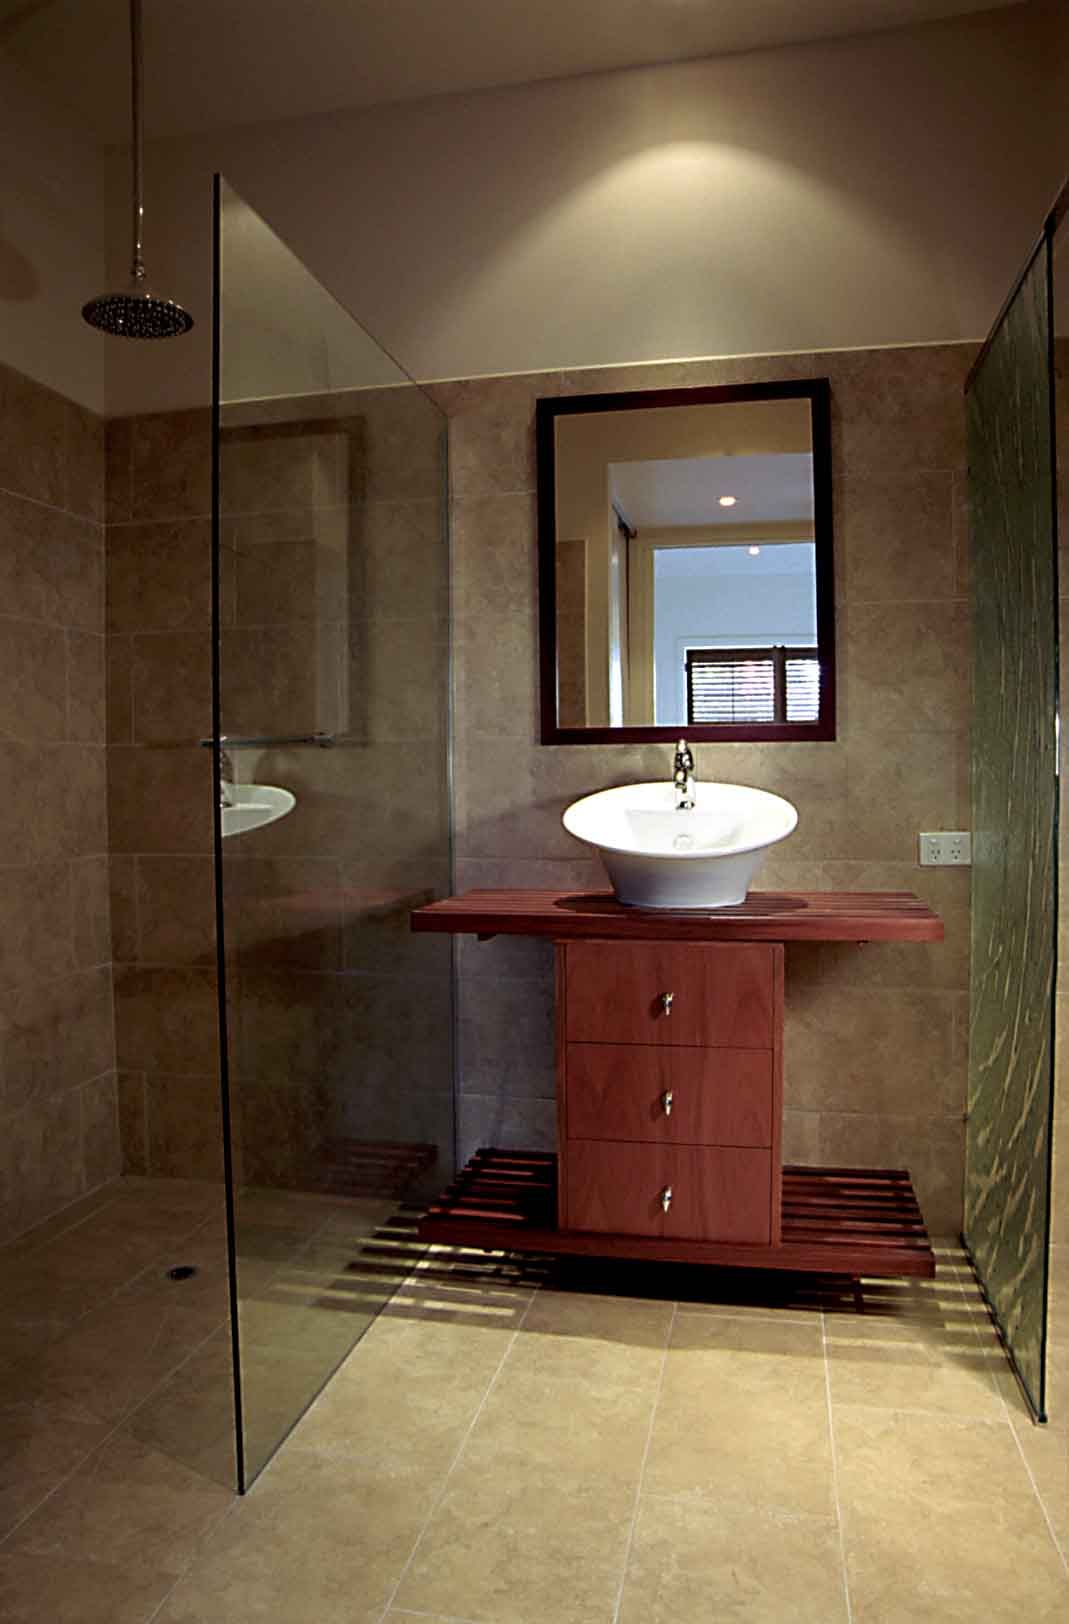 Wet room design for small bathrooms small ensuite for Small ensuite wet room ideas